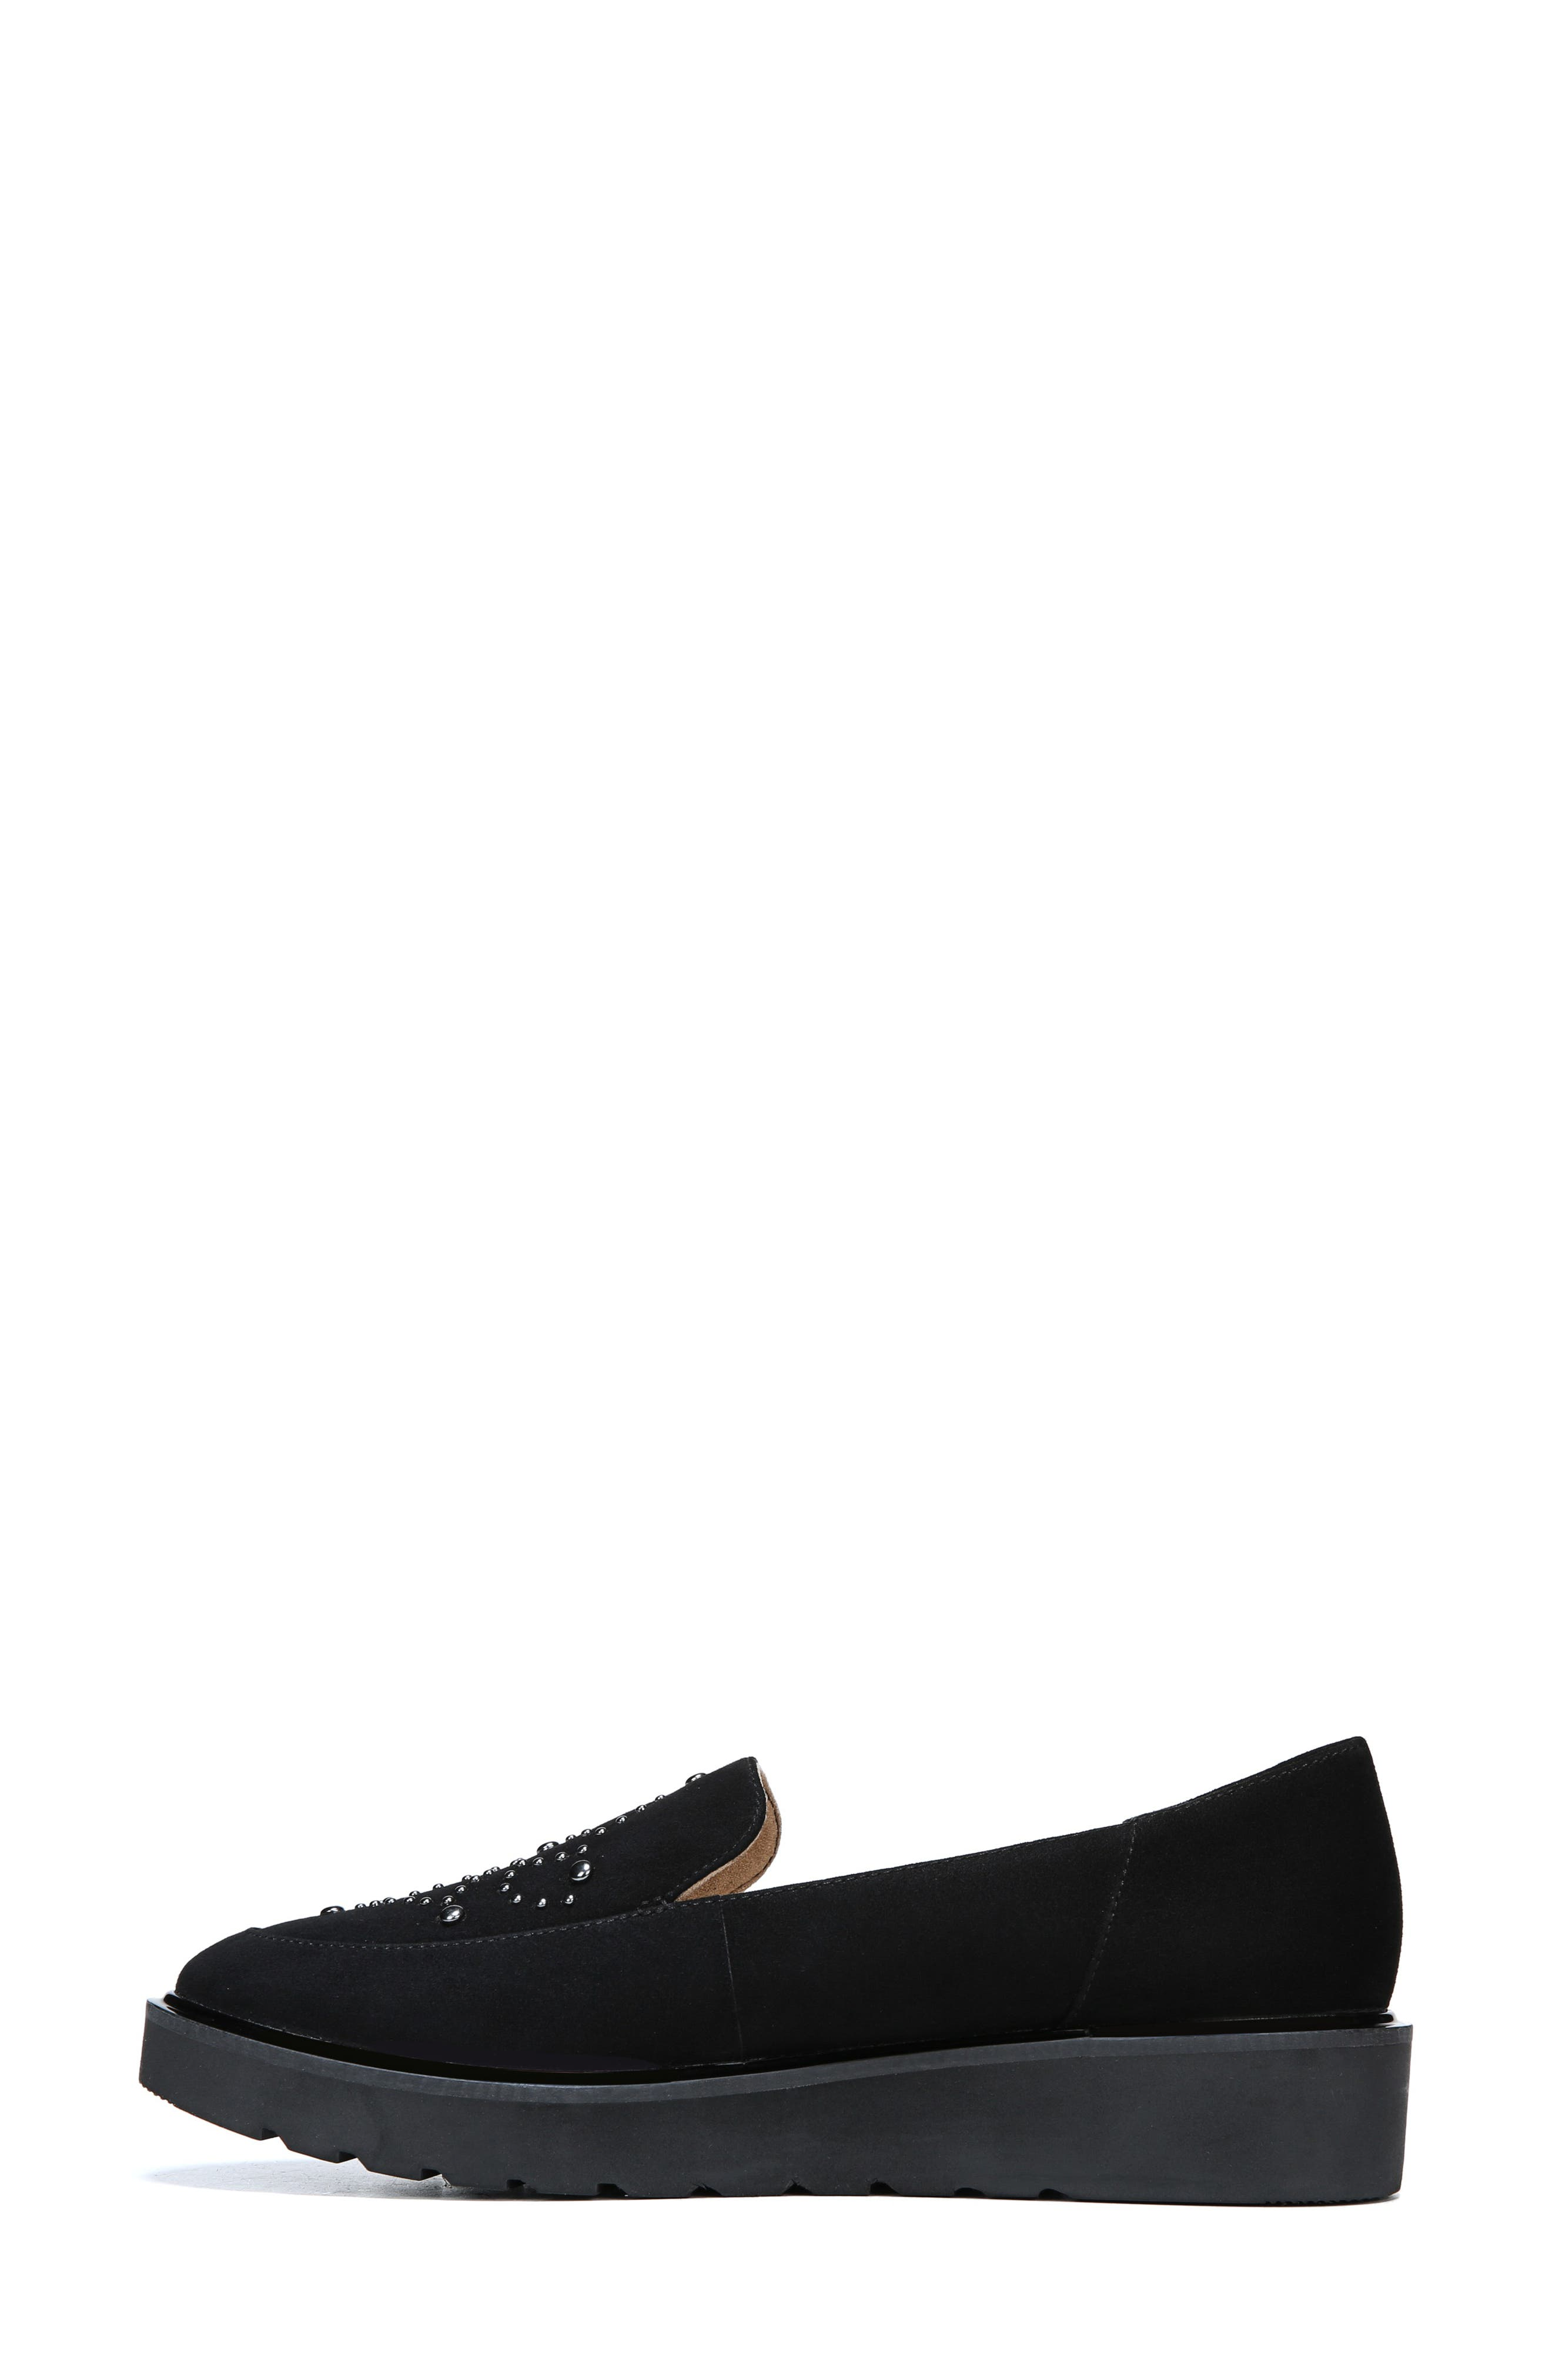 Andie Loafer,                             Alternate thumbnail 6, color,                             BLACK SUEDE